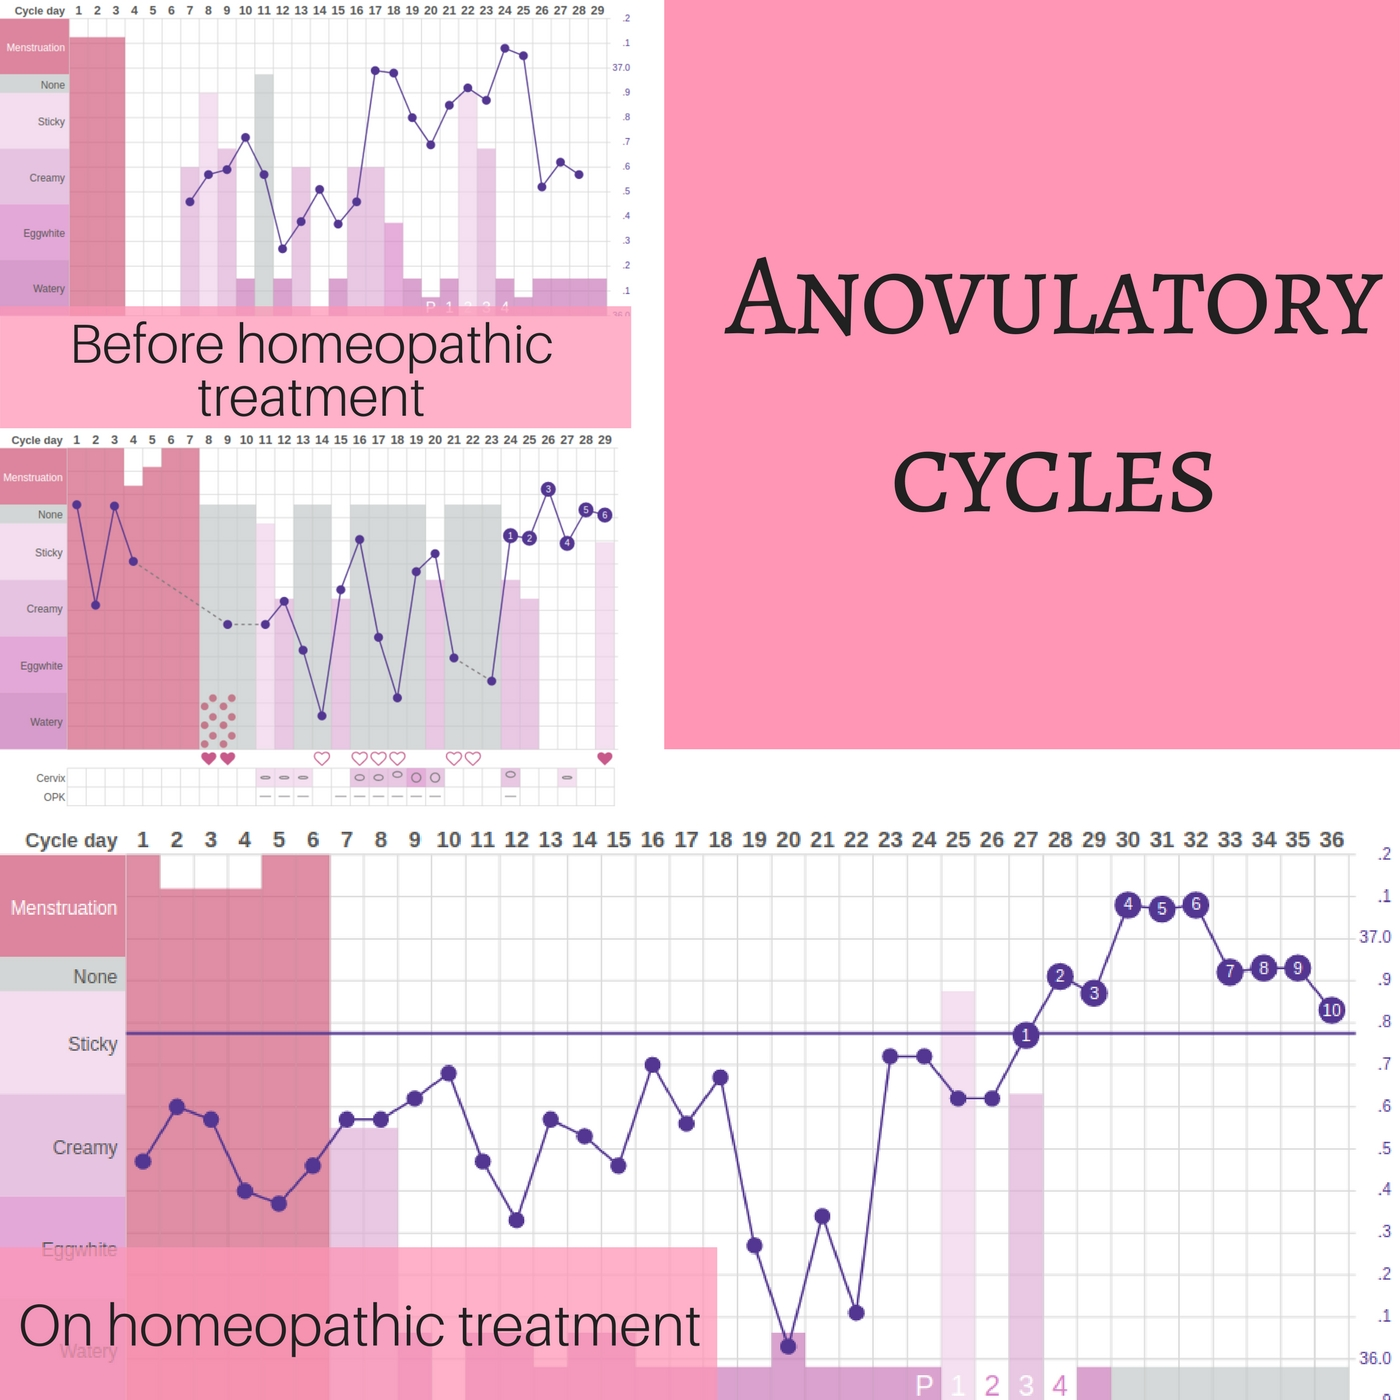 Anovulatory cycles